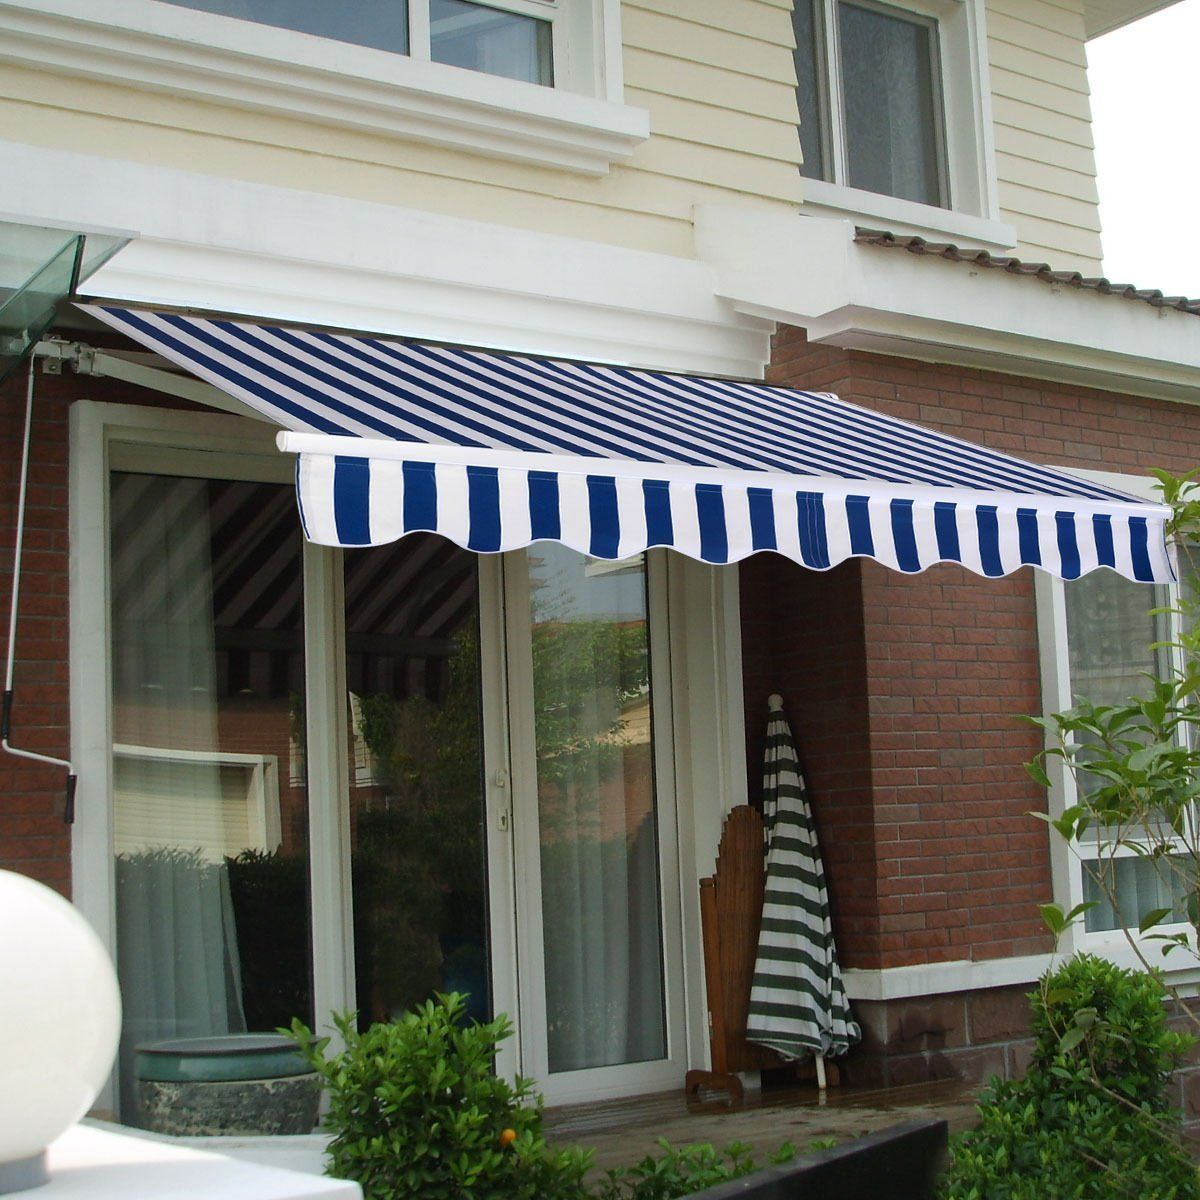 projectedi outdoor blinds shades awningsl rimini pergola awning retractable diy system patio check itl deck photo cover product shan vornado attached featured model today s